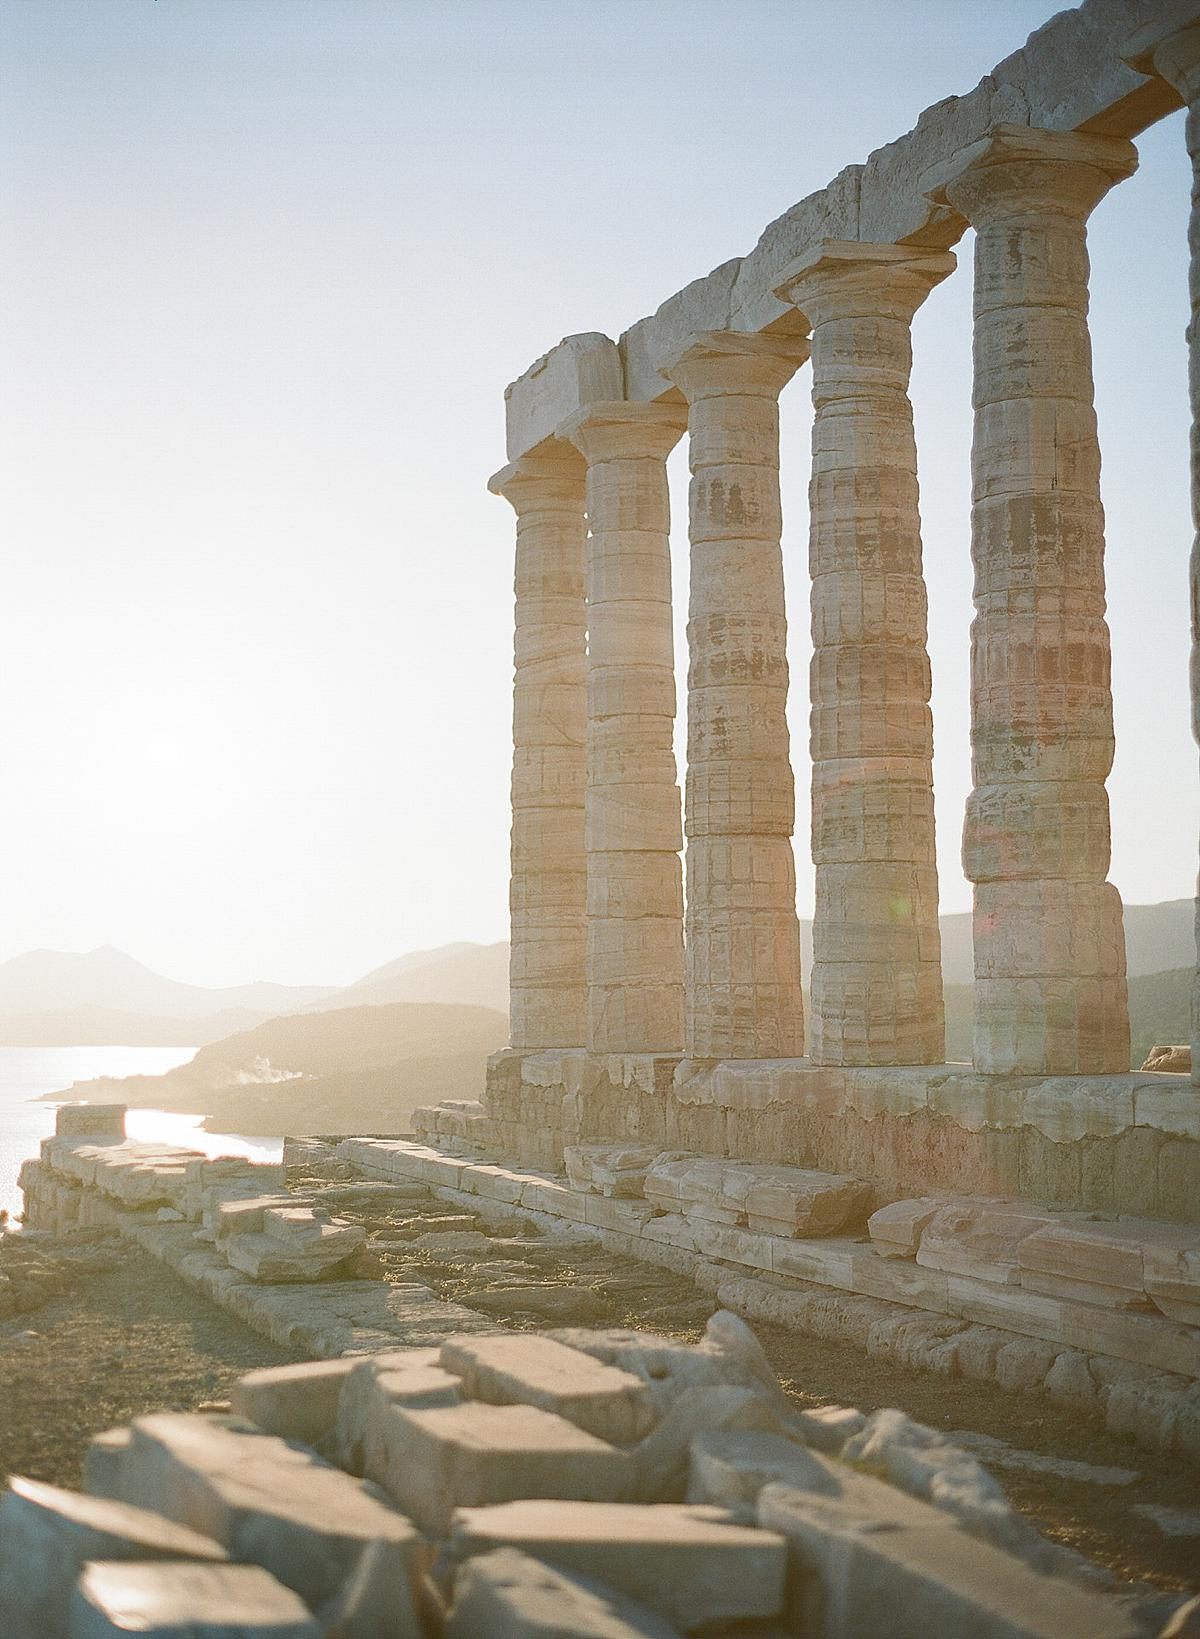 Sounio temple of Poseidon